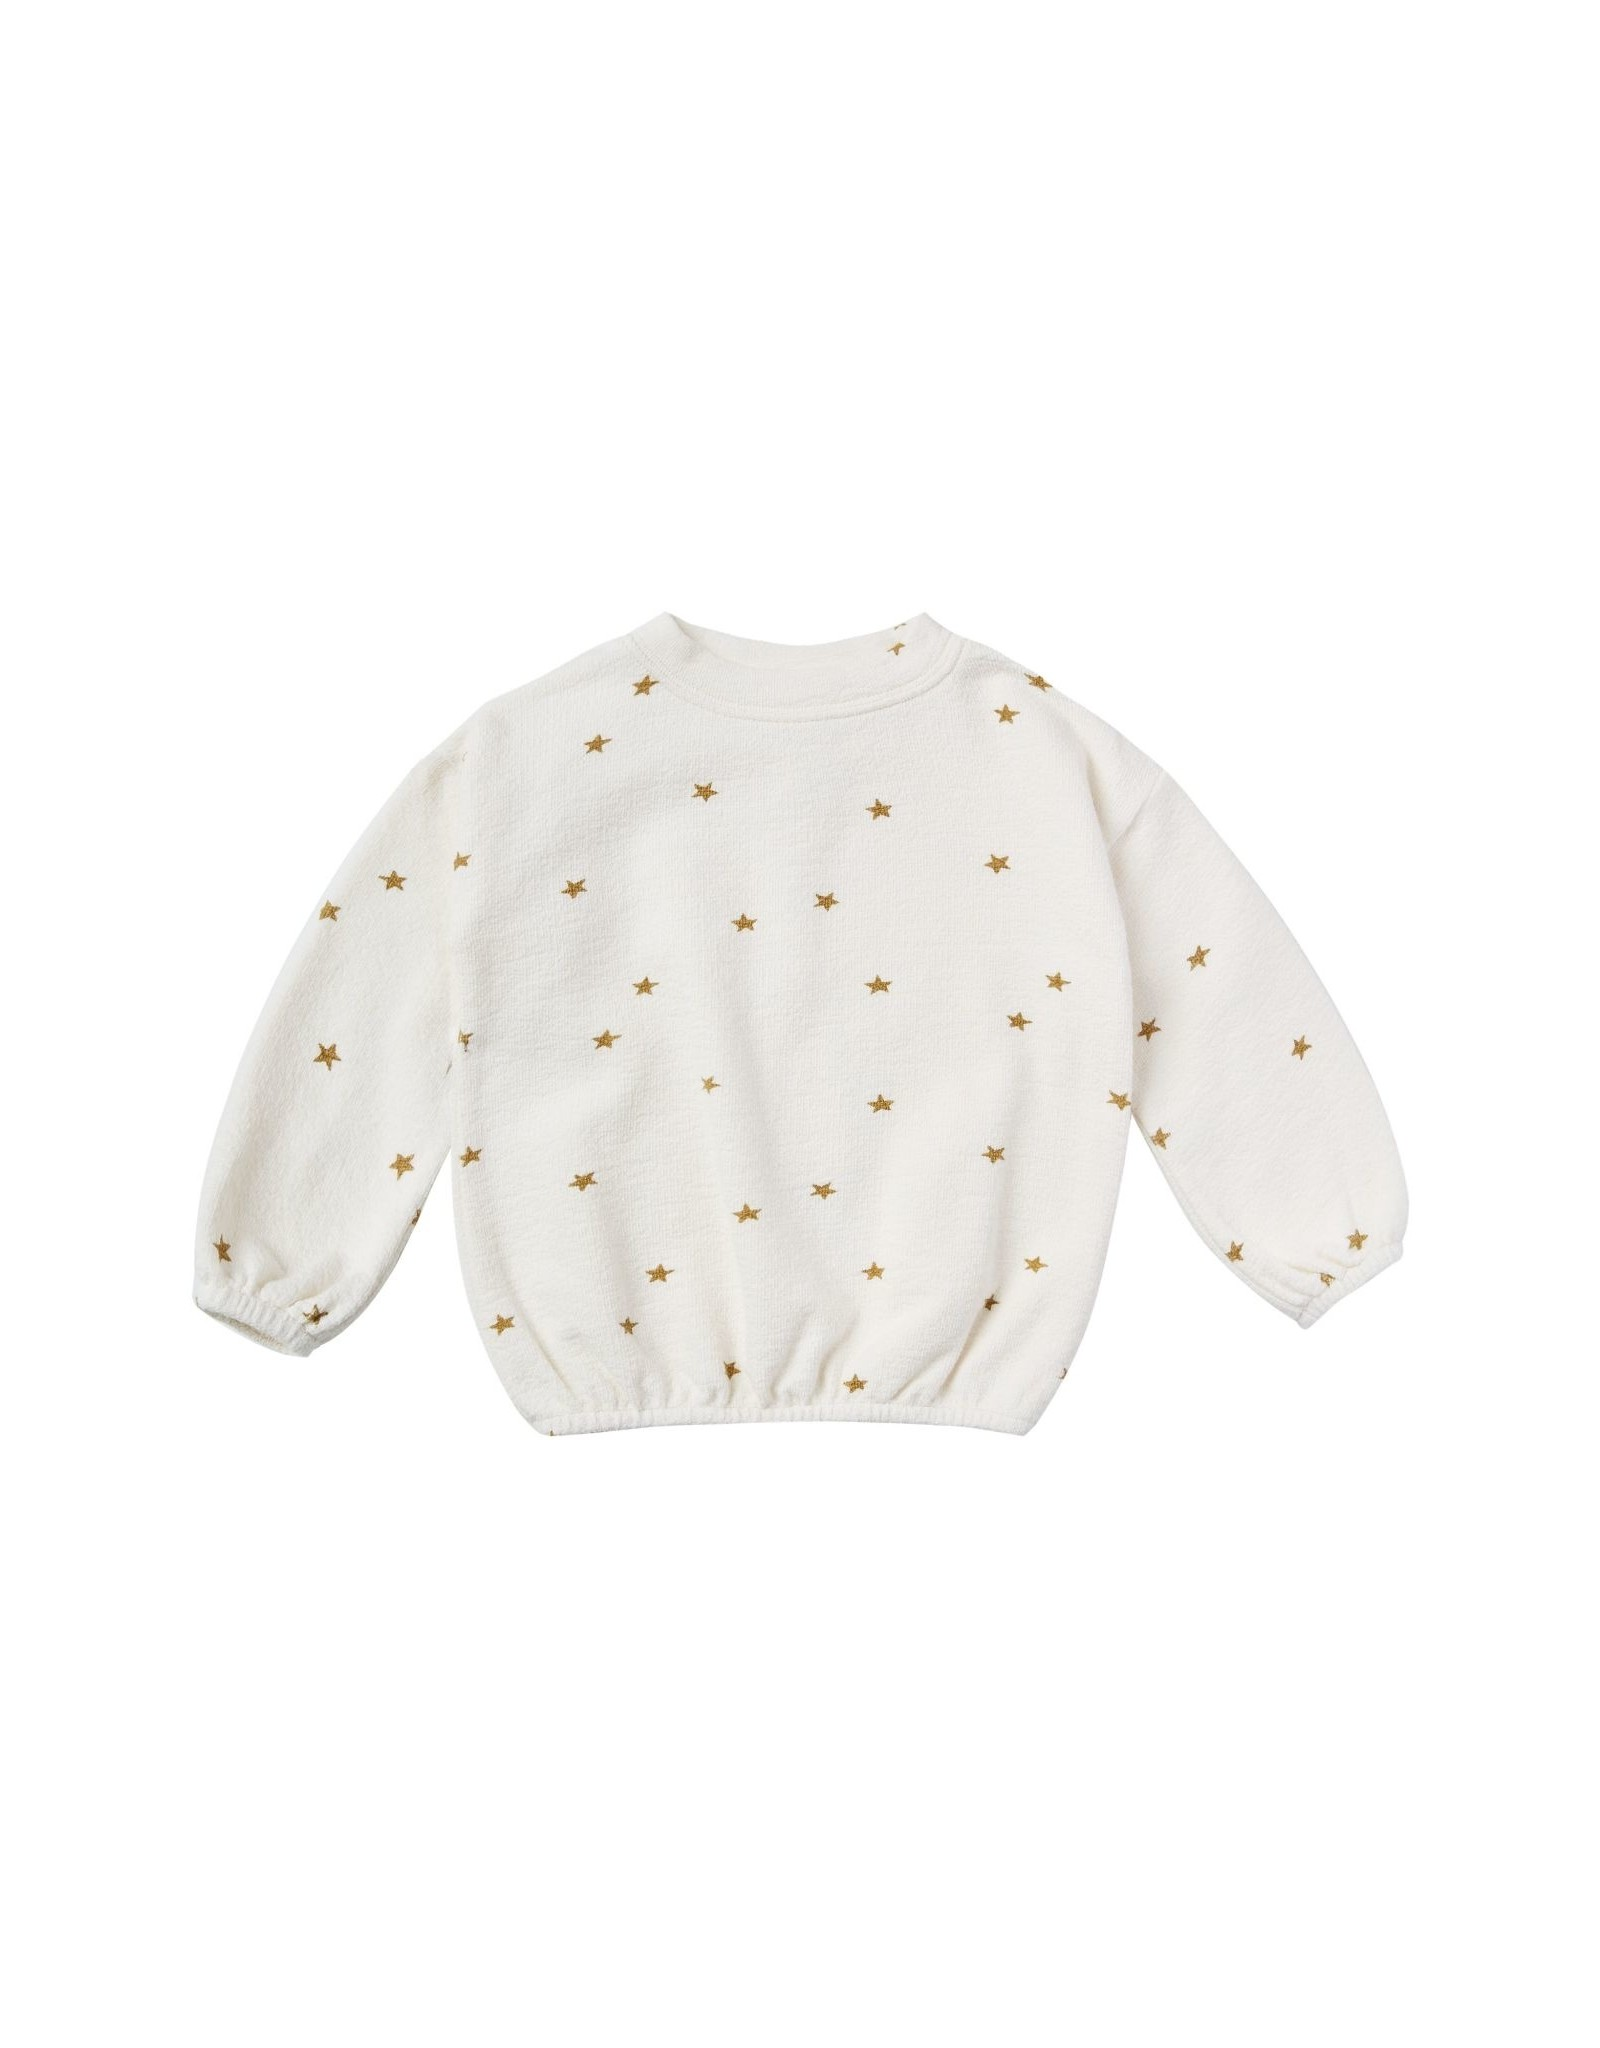 Rylee and Cru star slouchy pullover- ivory